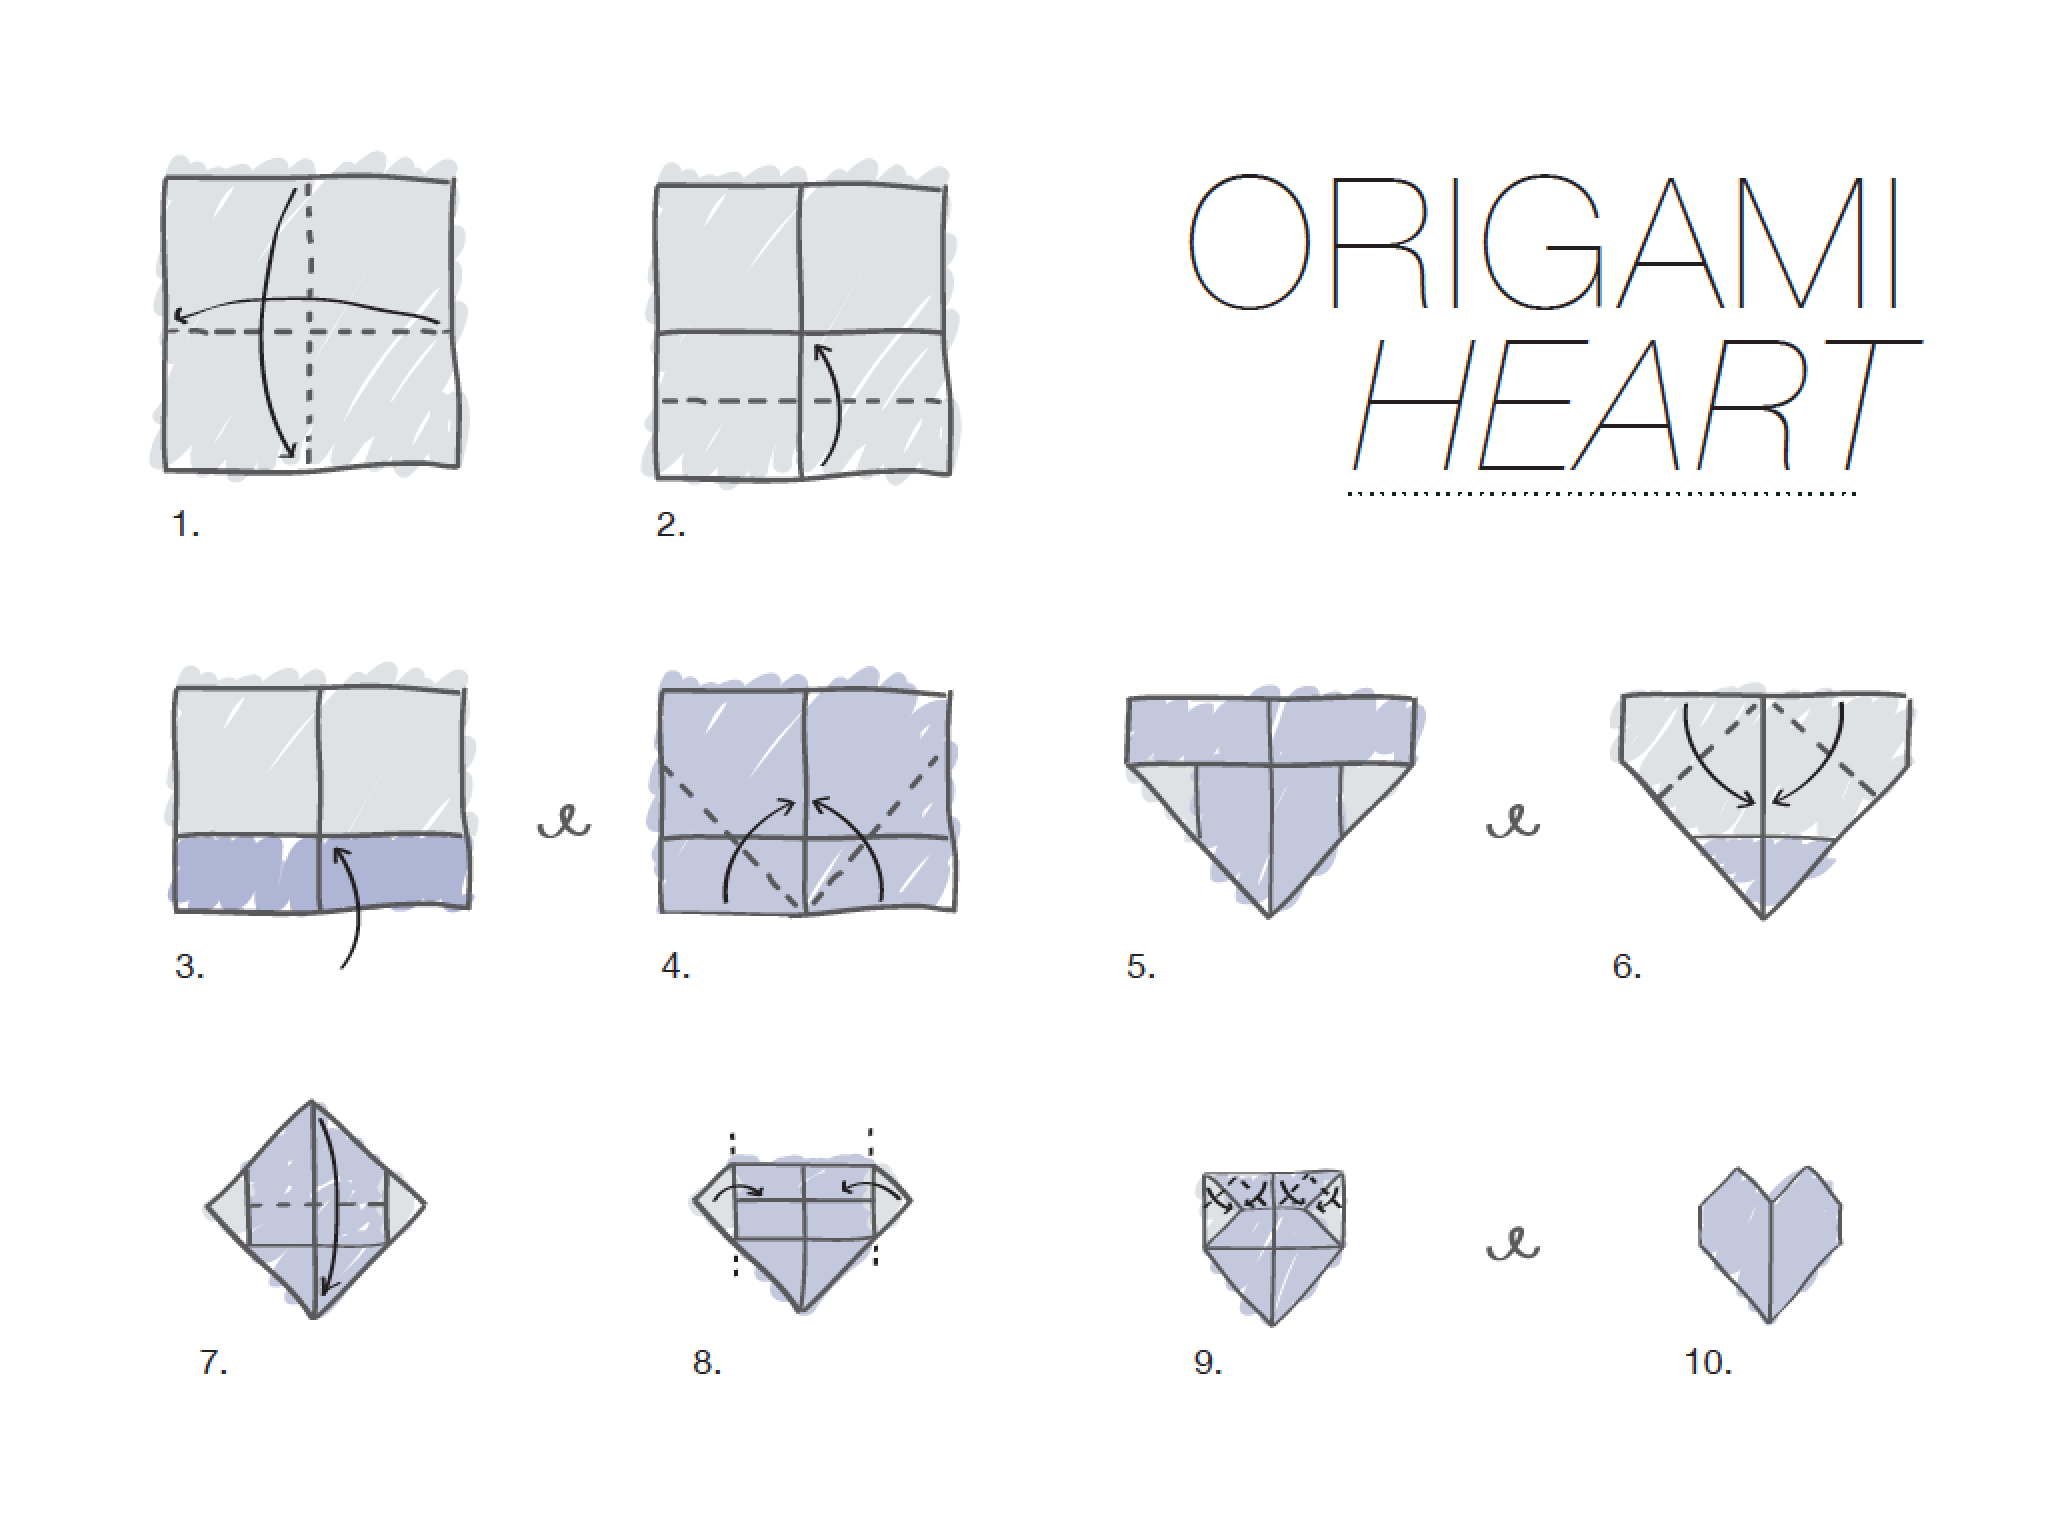 easy origami heart step by step origami heart - photo#17